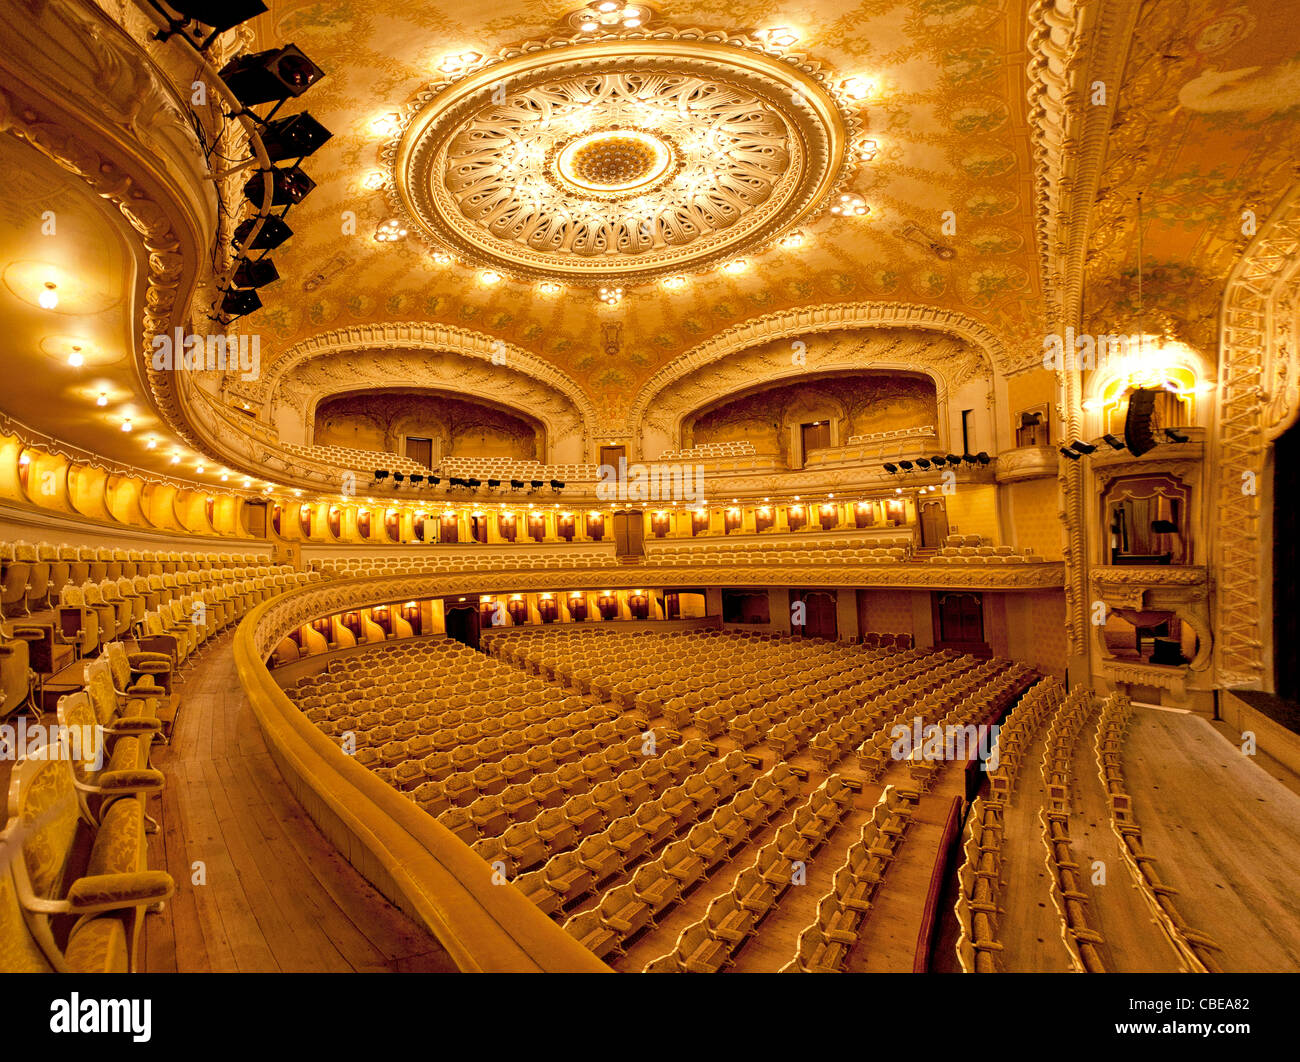 An Inner View Of The Vichy S Opera House Art Nouveau